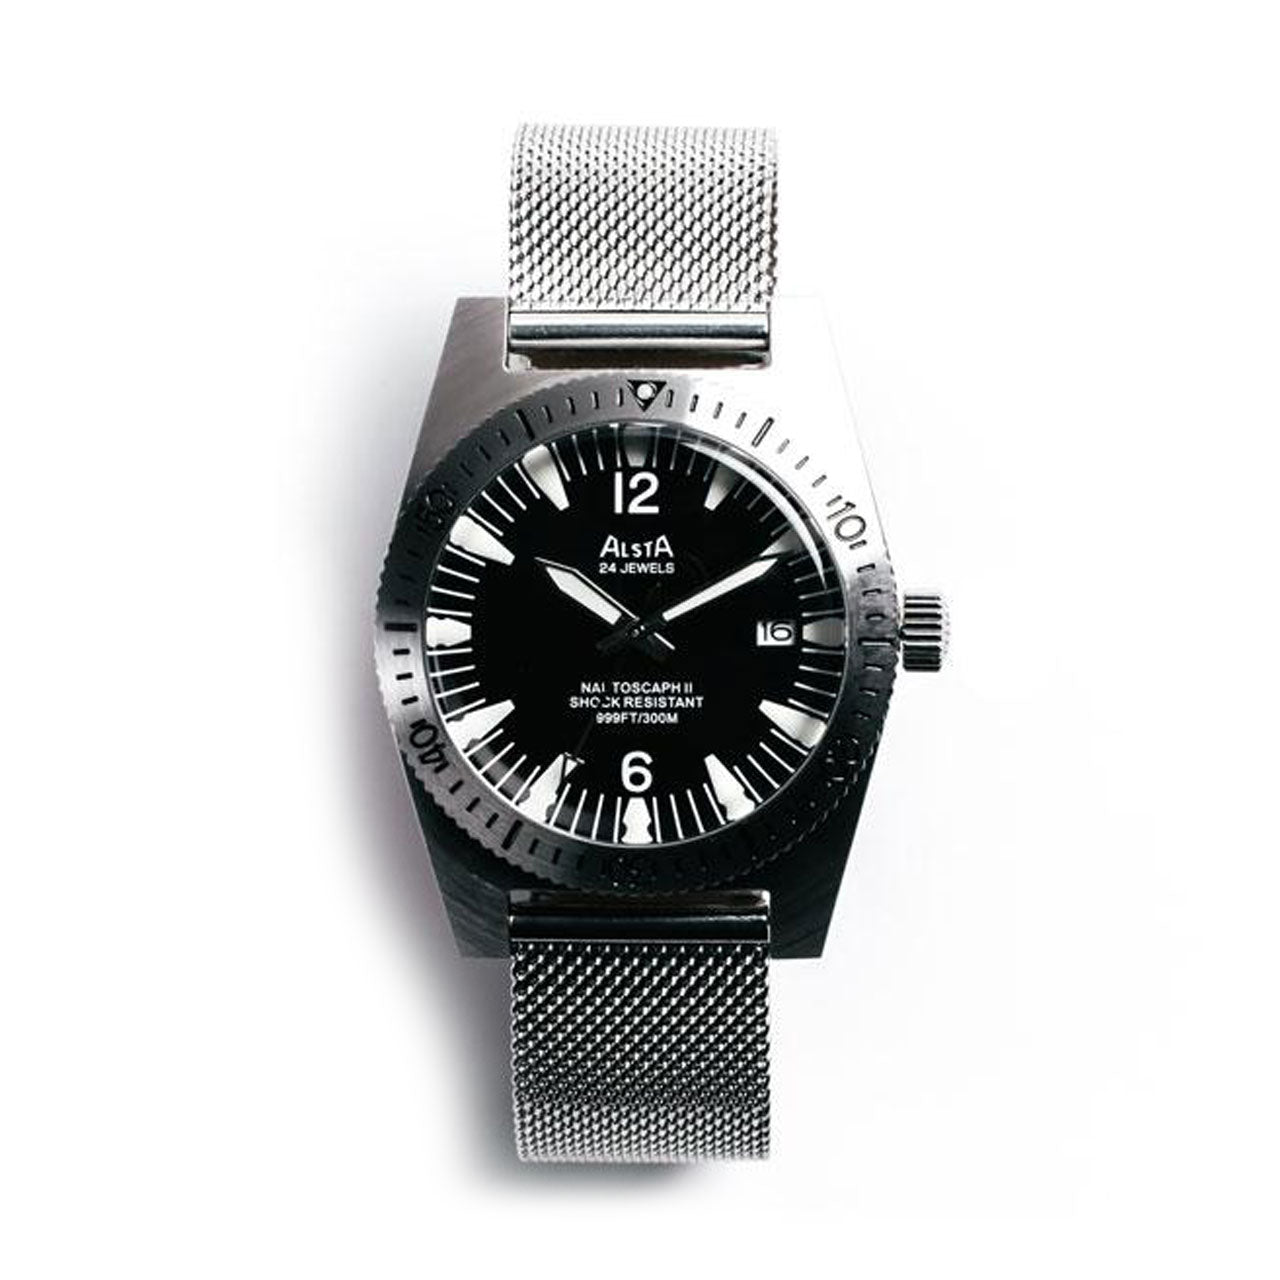 Alsta Nautoscaph II Jaws Watch